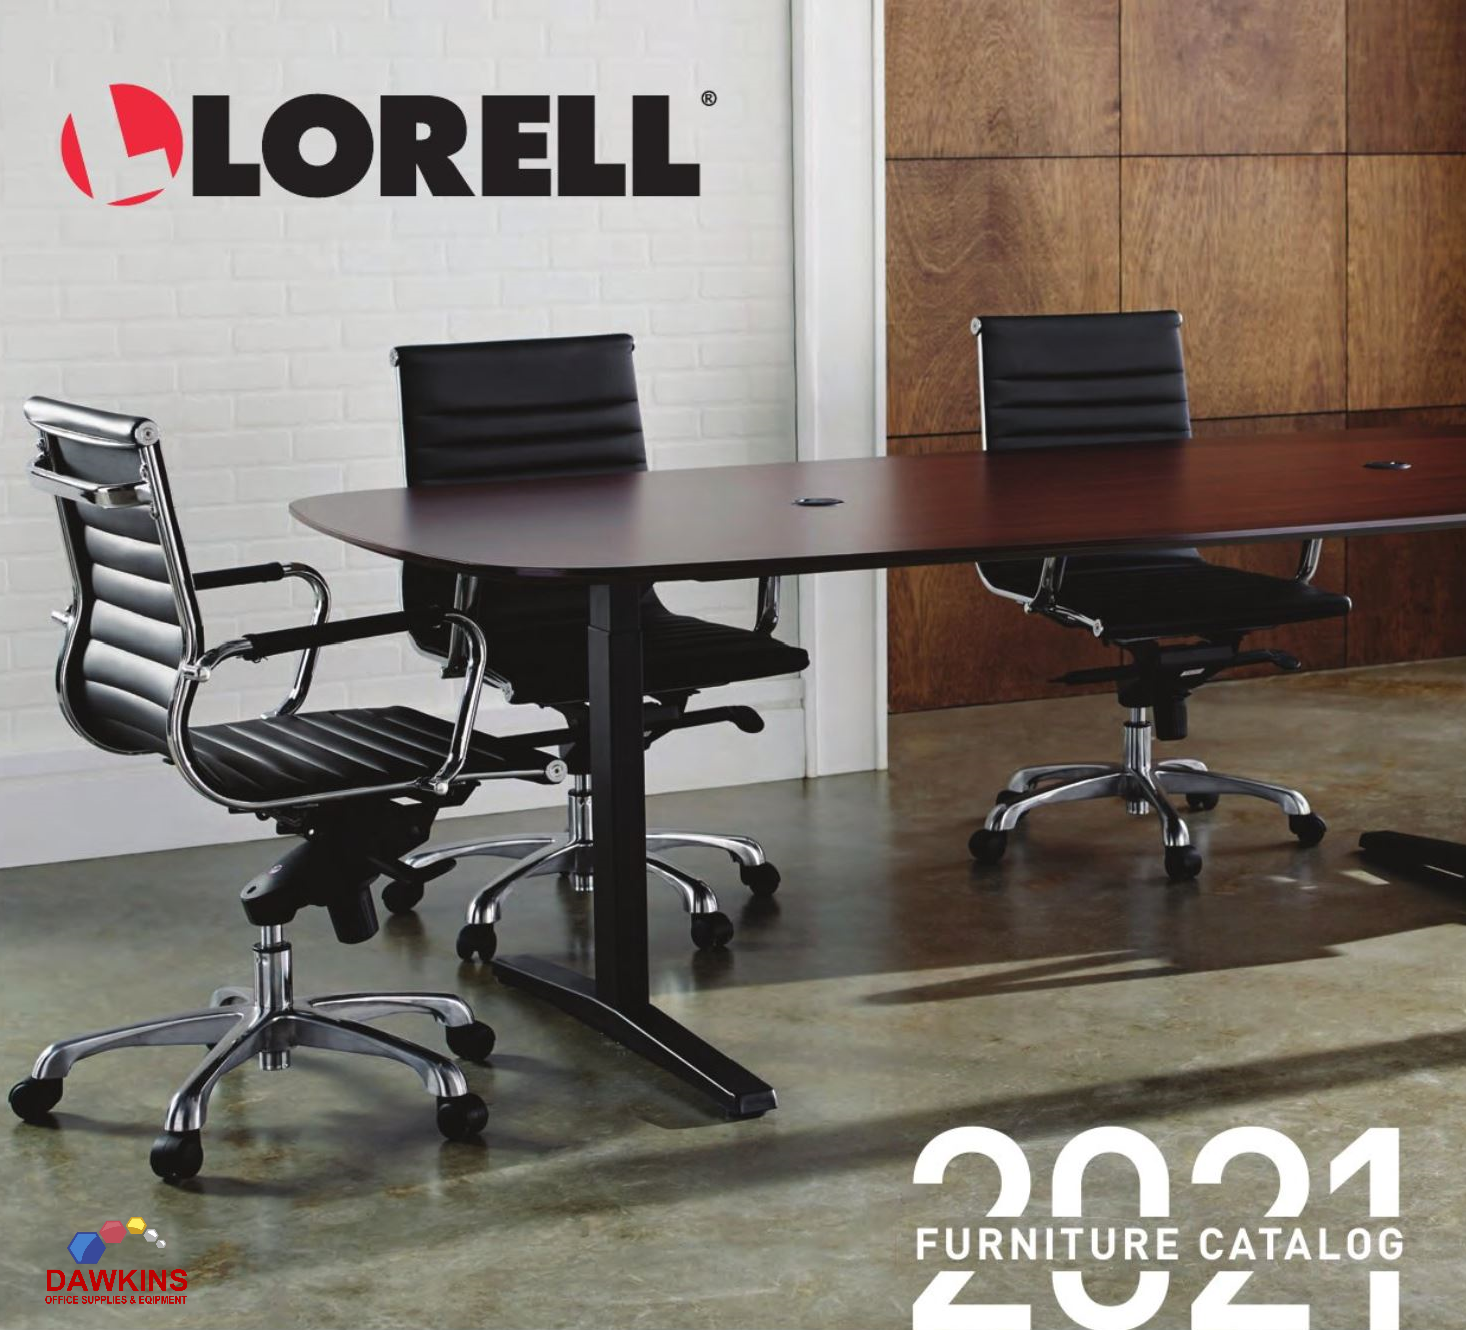 LORELL 2021 FURNITURE CATALOG